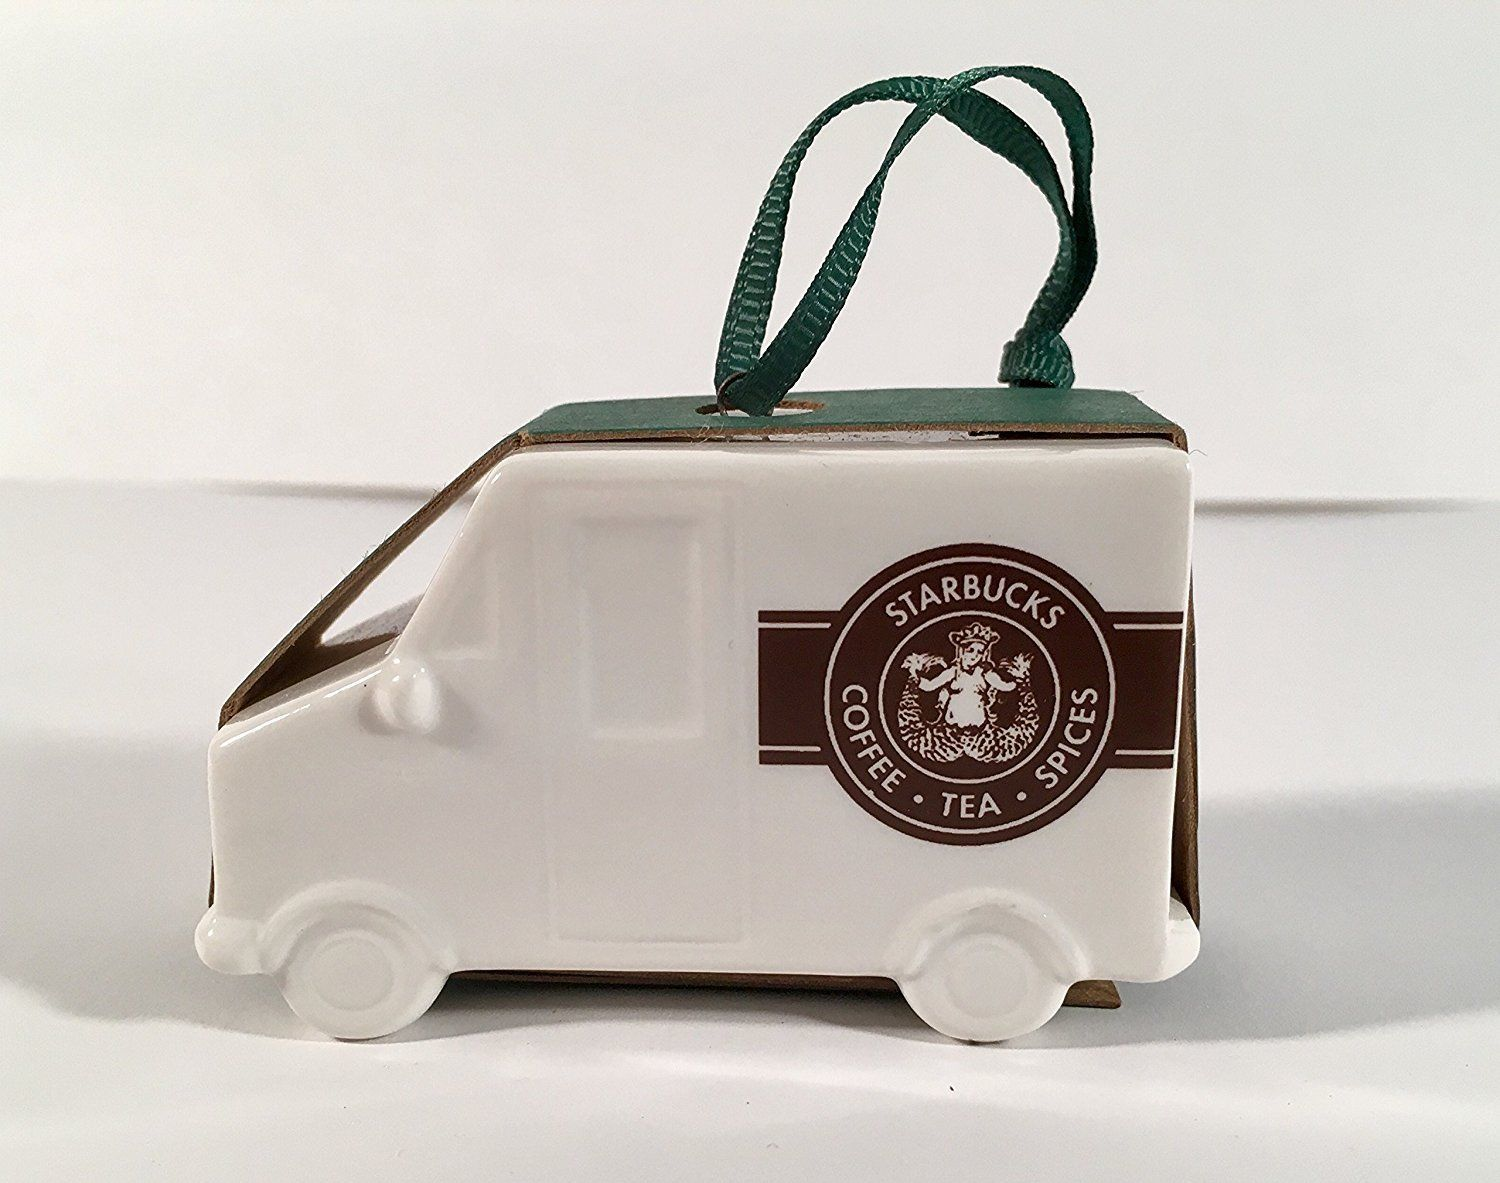 STARBUCKS 2016 DELIVERY TRUCK ORNAMENT CERAMIC NEW